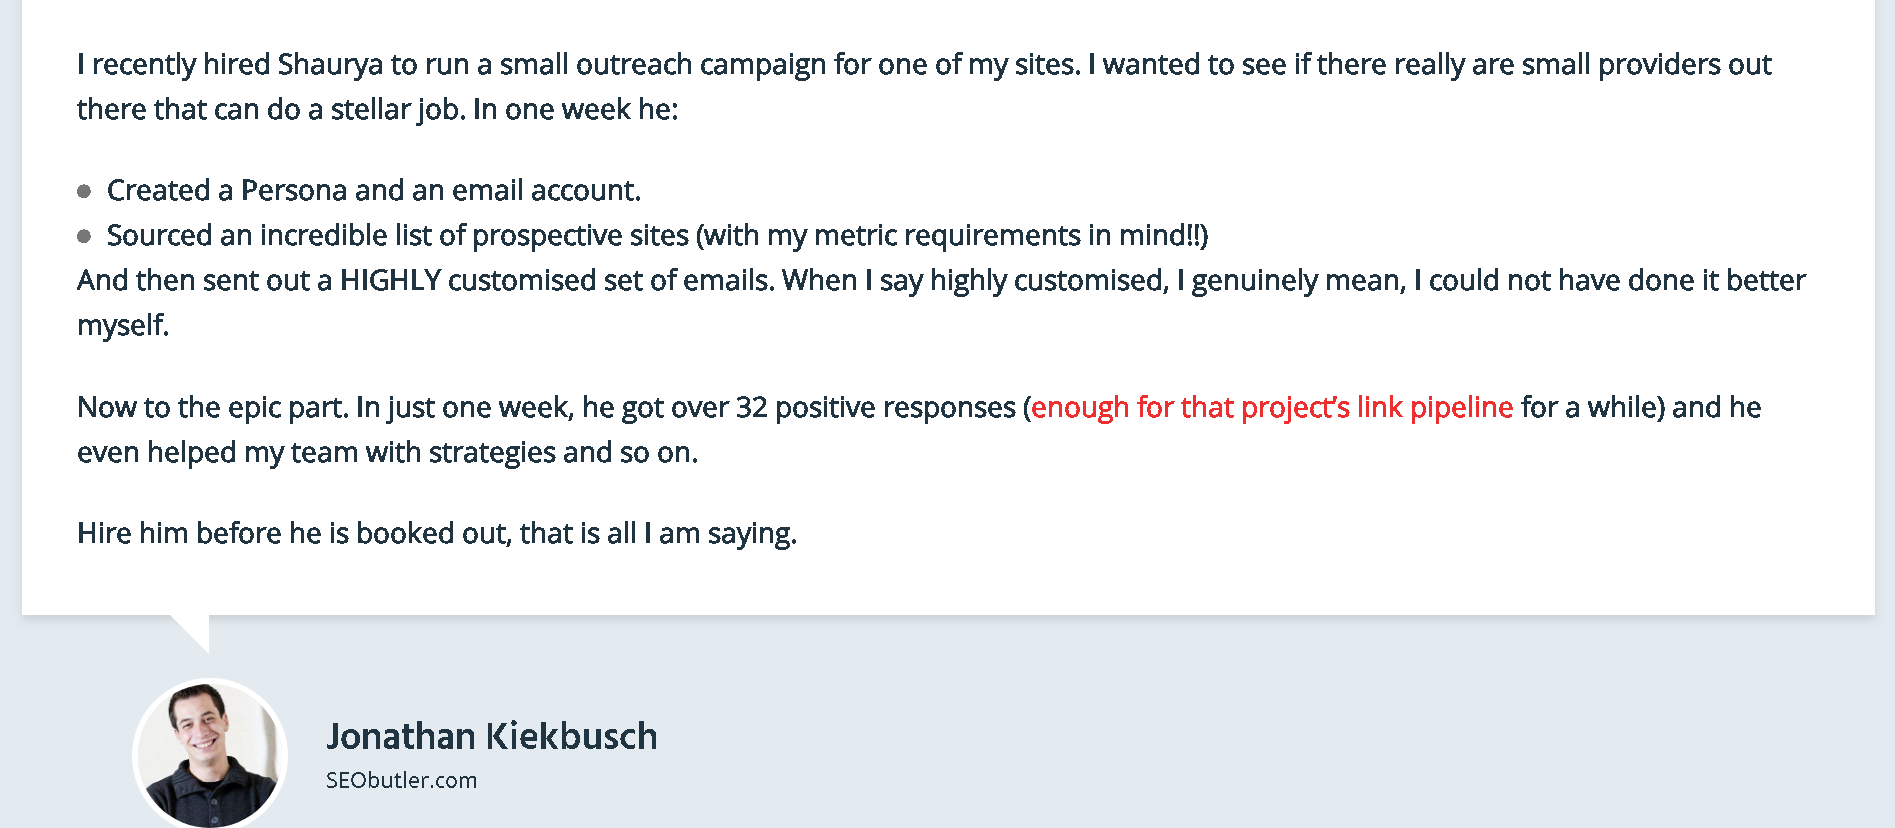 Testimonial for my service from Jonathan Kiekbusch